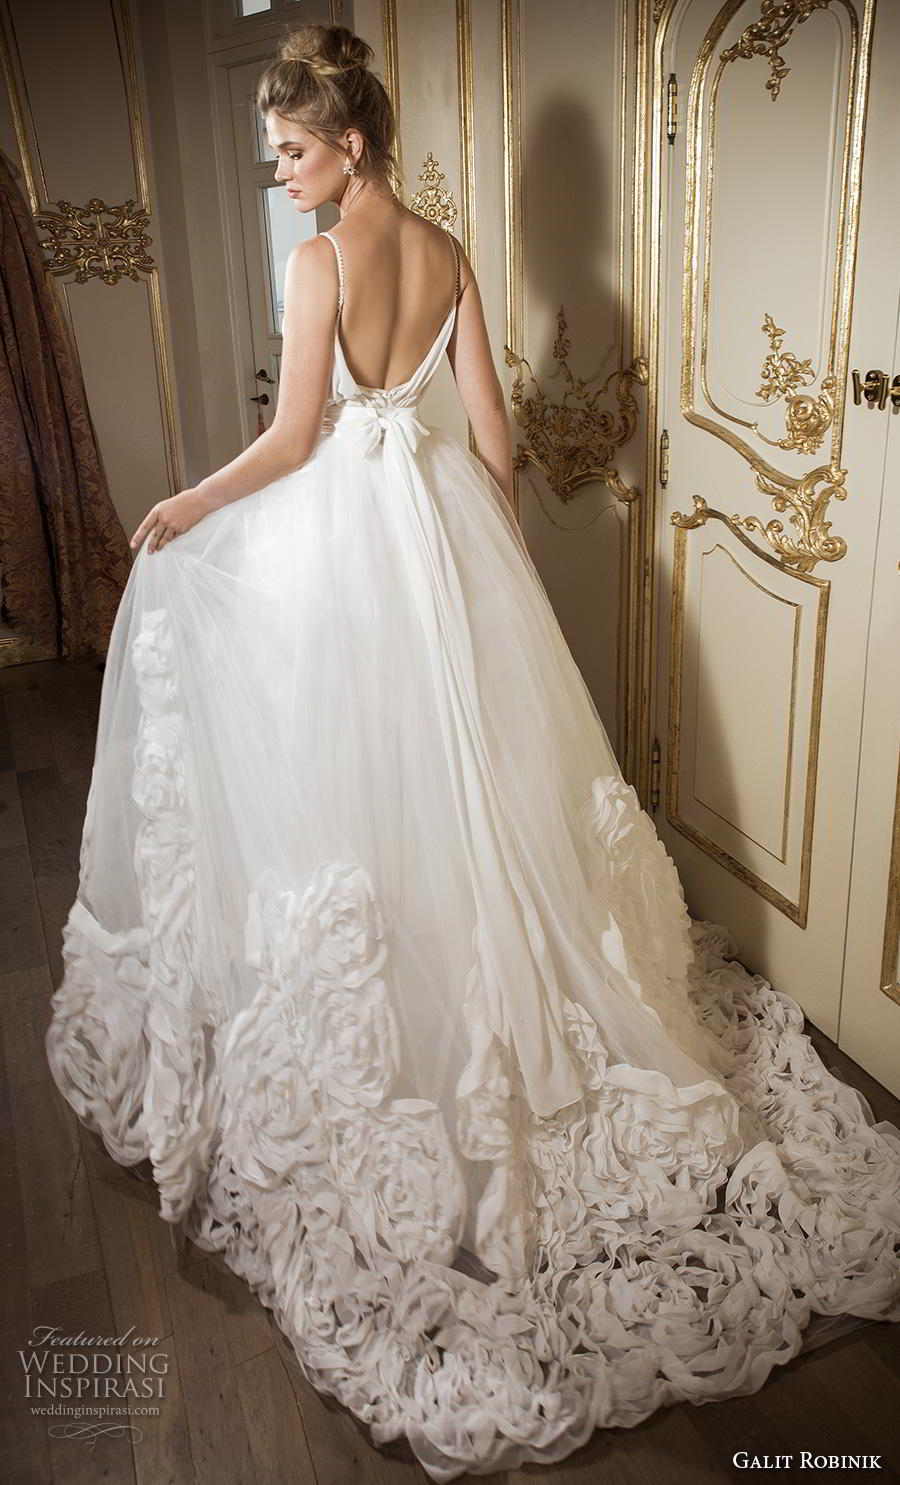 galit robinik 2019 bridal thin strap deep plunging sweetheart neckline ruched bodice romantic a  line wedding dress backless scoop back chapel train (4) bv